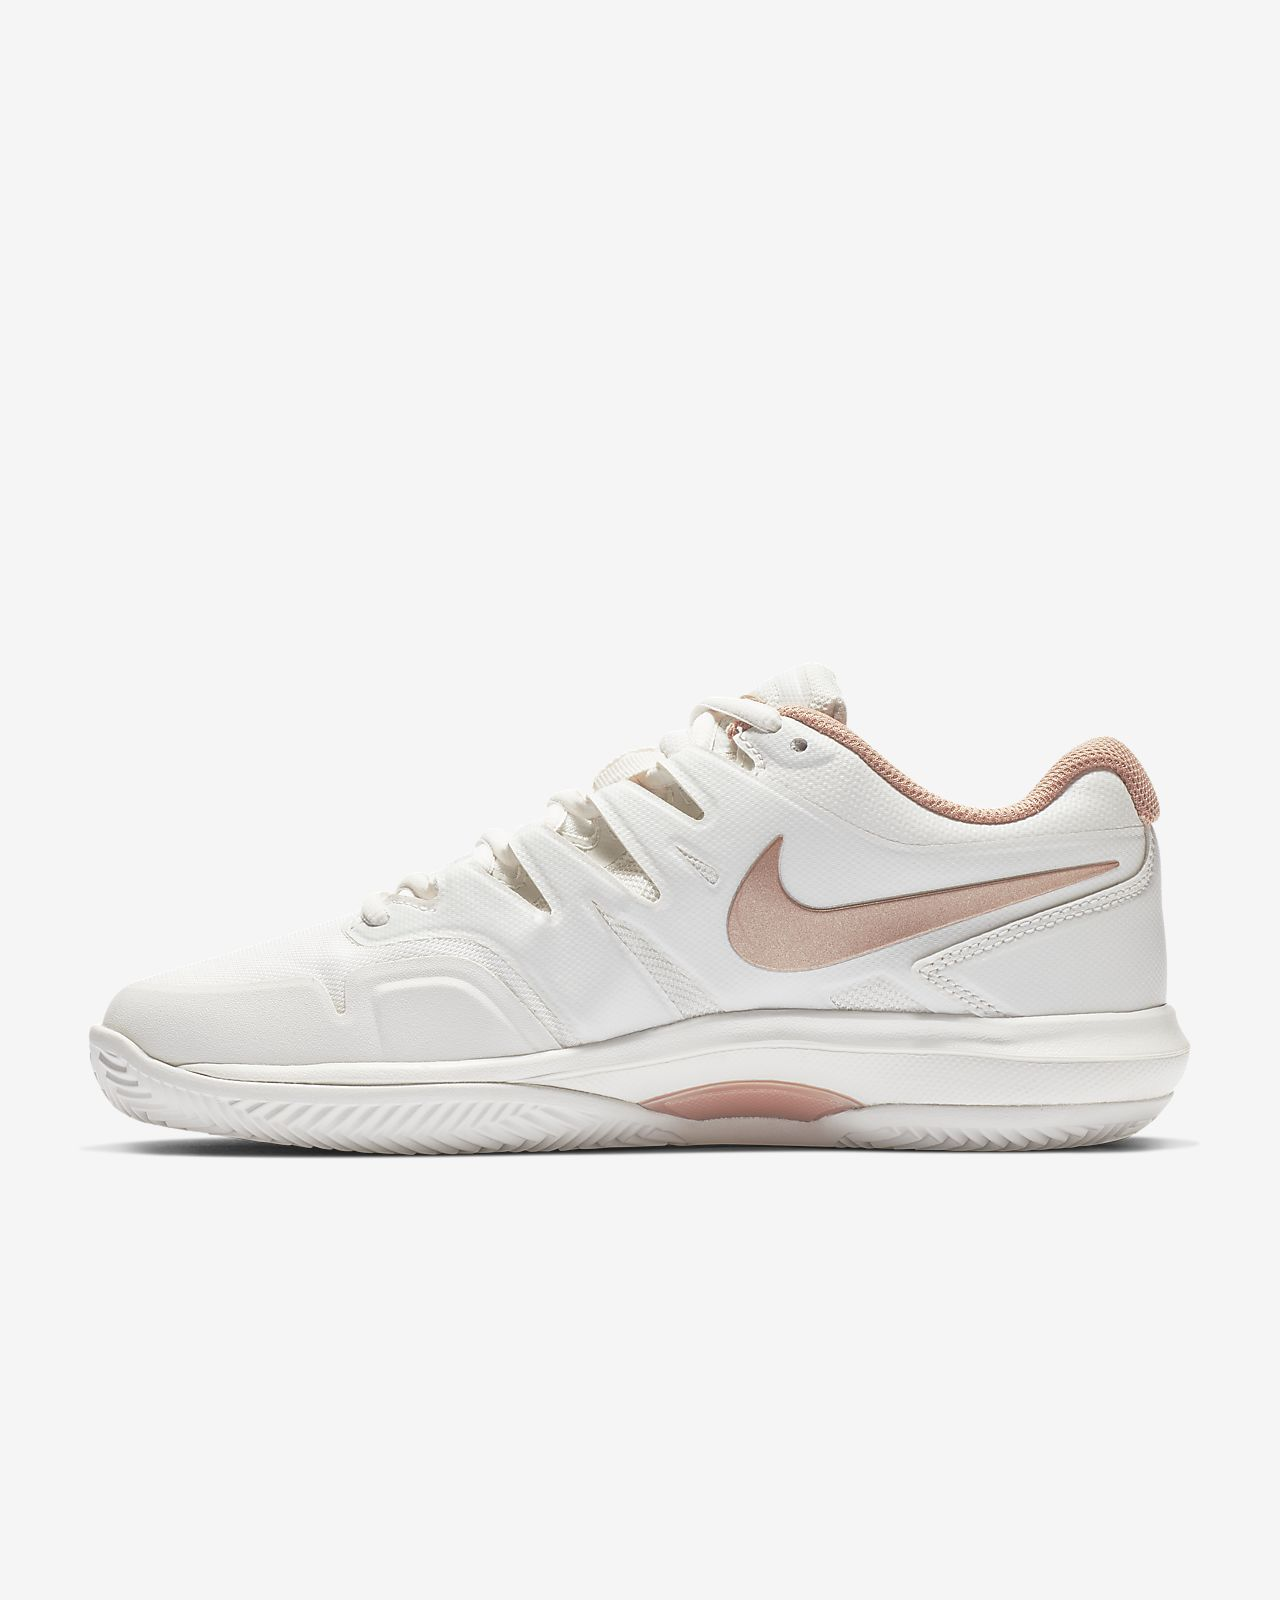 Nike Air Zoom Prestige Clay Women's Tennis Shoe